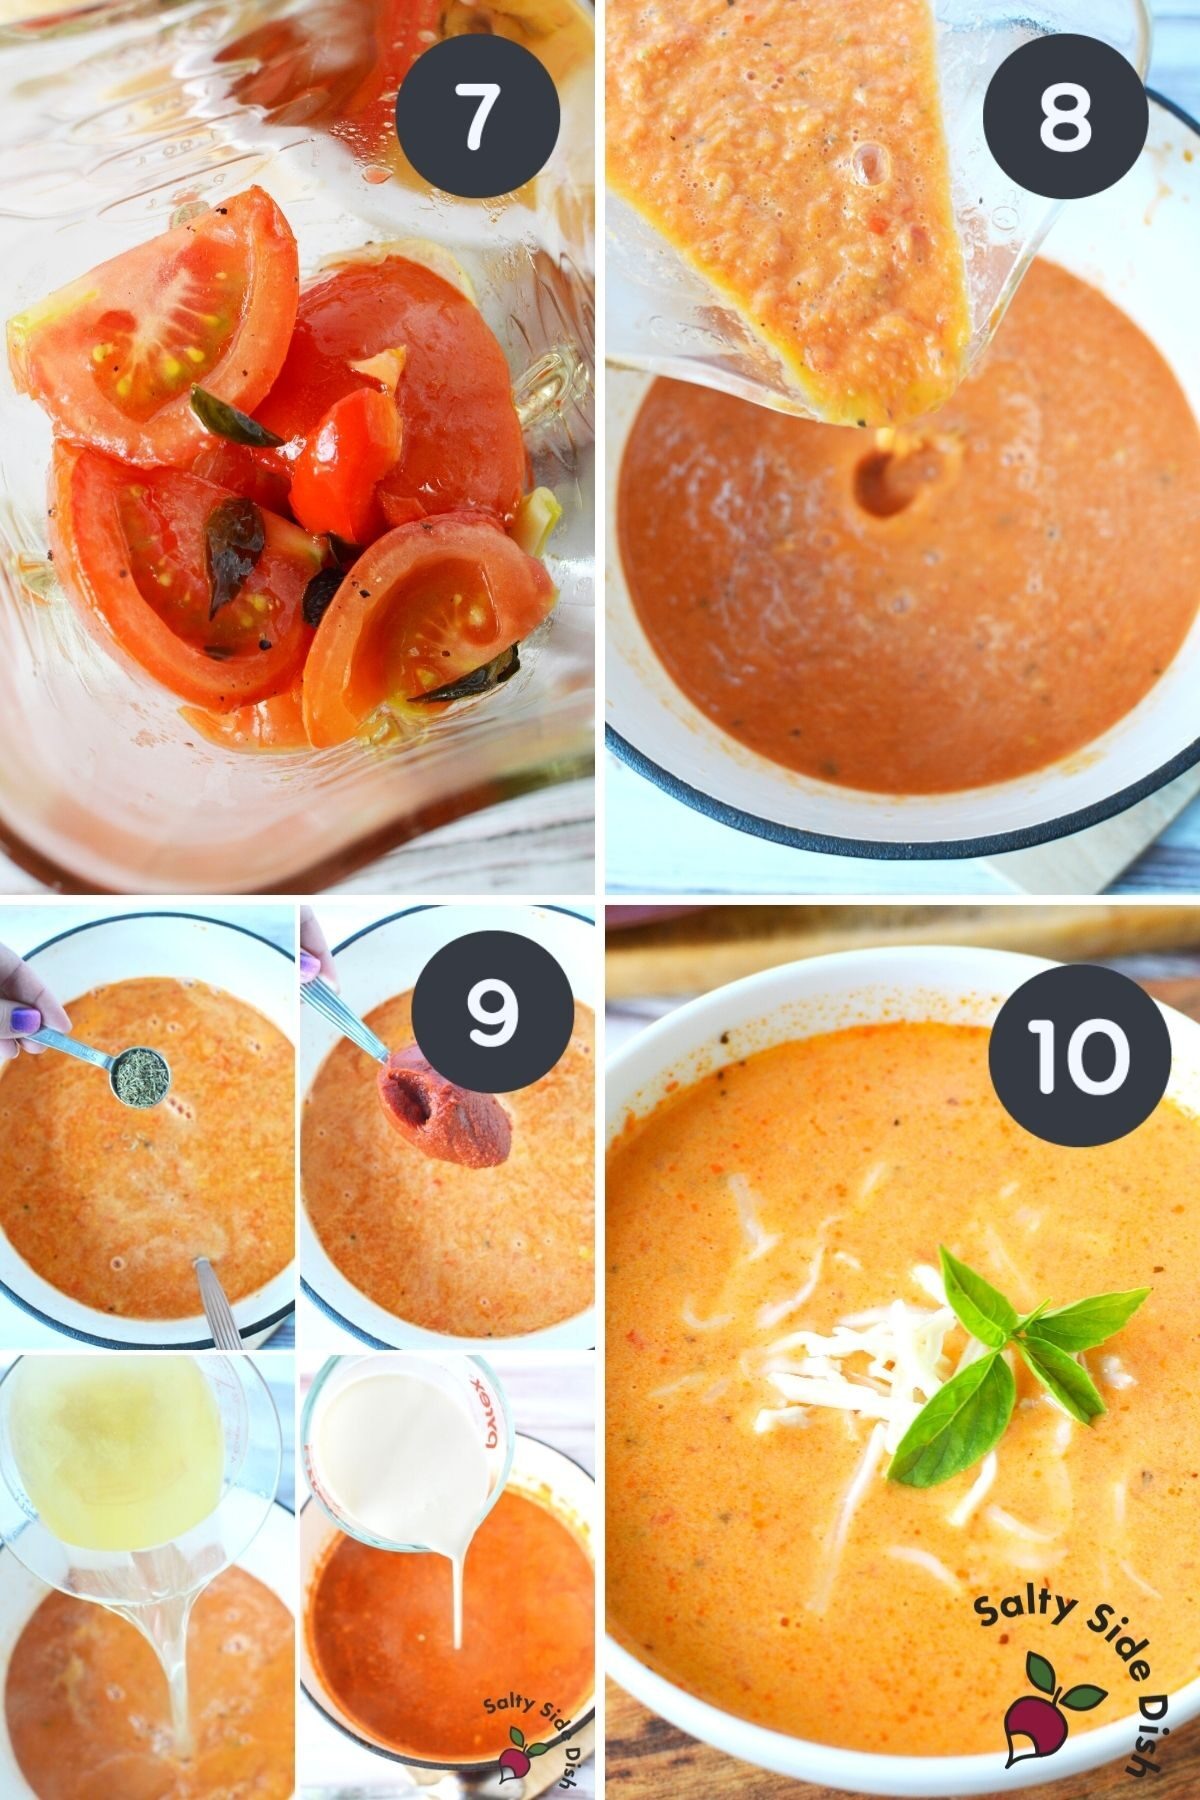 4 image collage of how to properly blend tomato bisque.